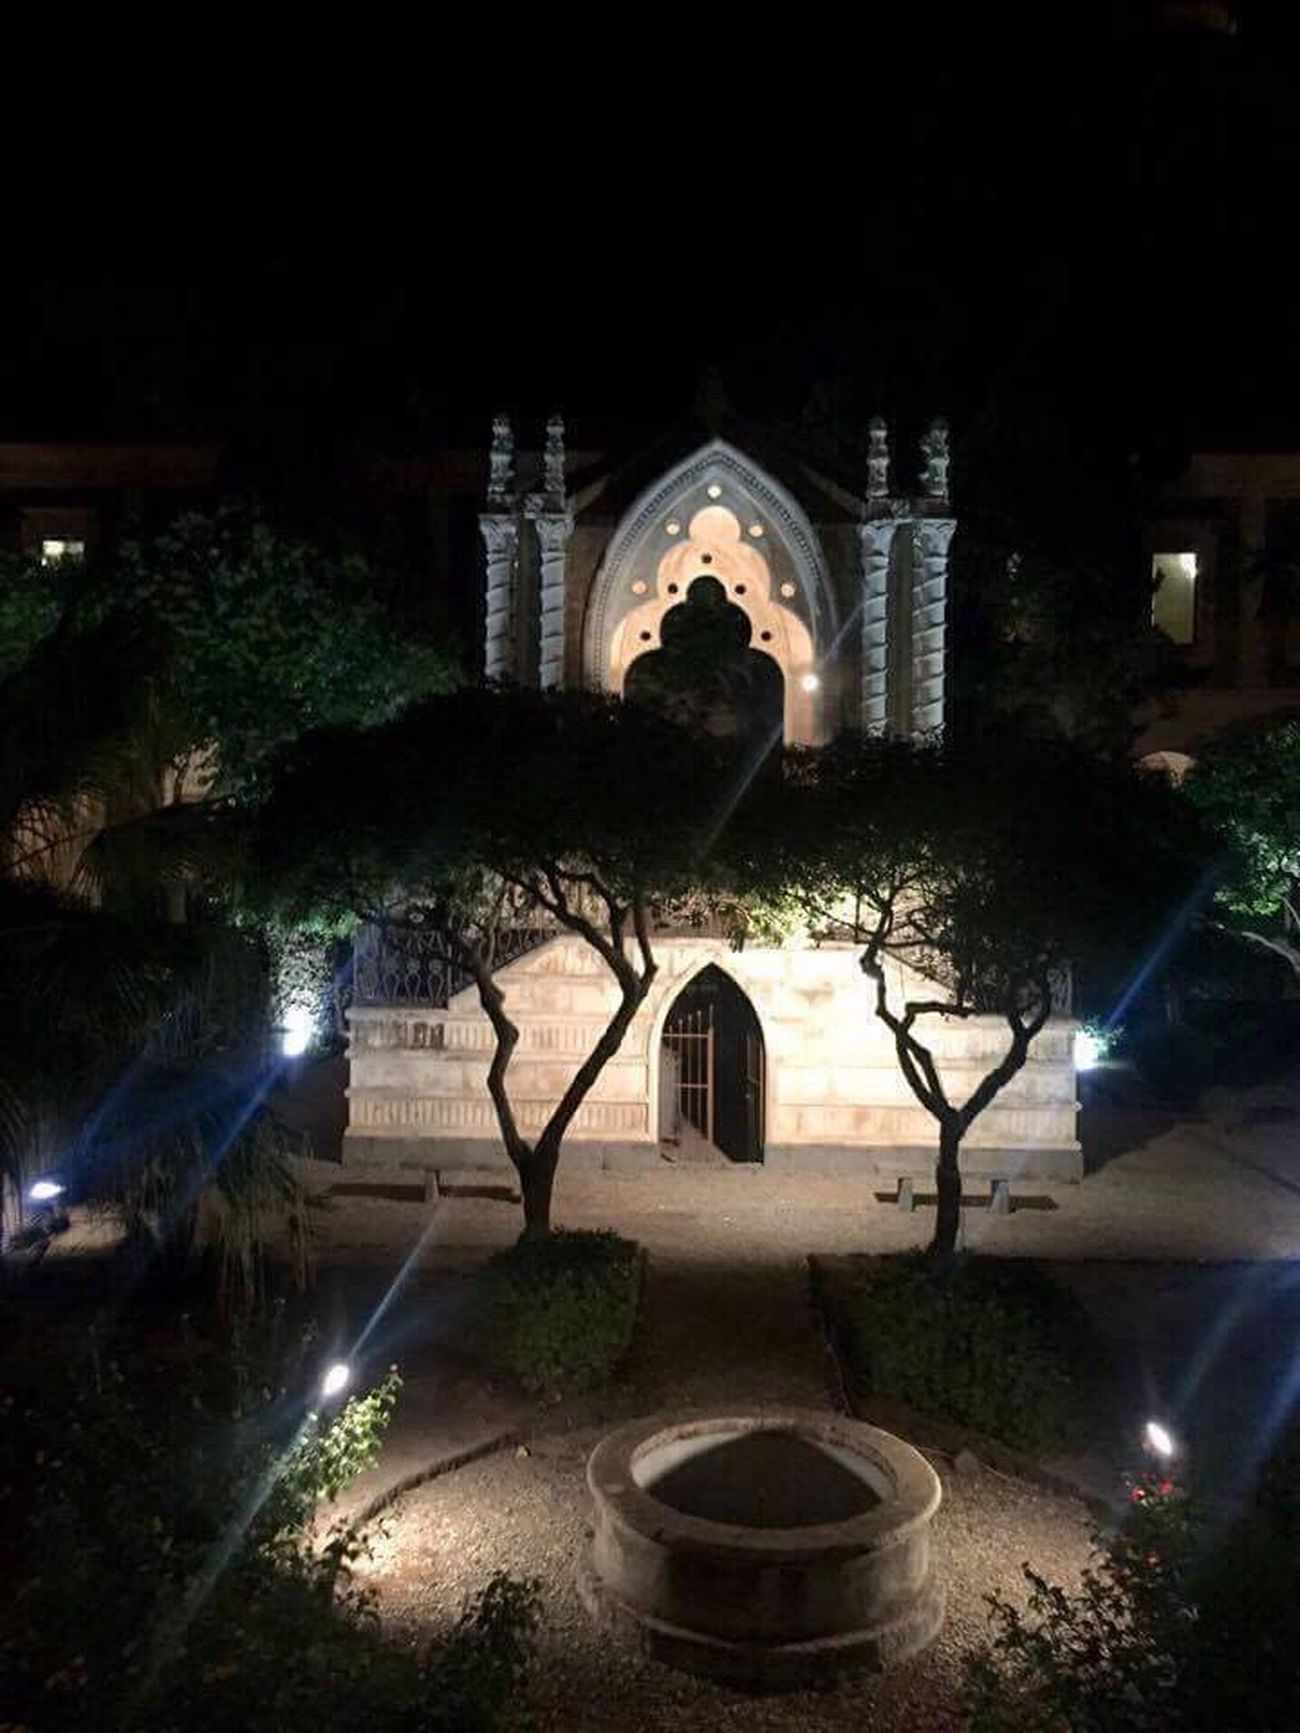 Night Architecture Tree Building Exterior No People Outdoors Ancient Monastery Cloister Nightphotography Night Lights Nightshot Garden Architecture Tranquility Eyeem Photography The Great Outdoors - 2017 EyeEm Awards The Architect - 2017 EyeEm Awards Mycity Catania, Sicily